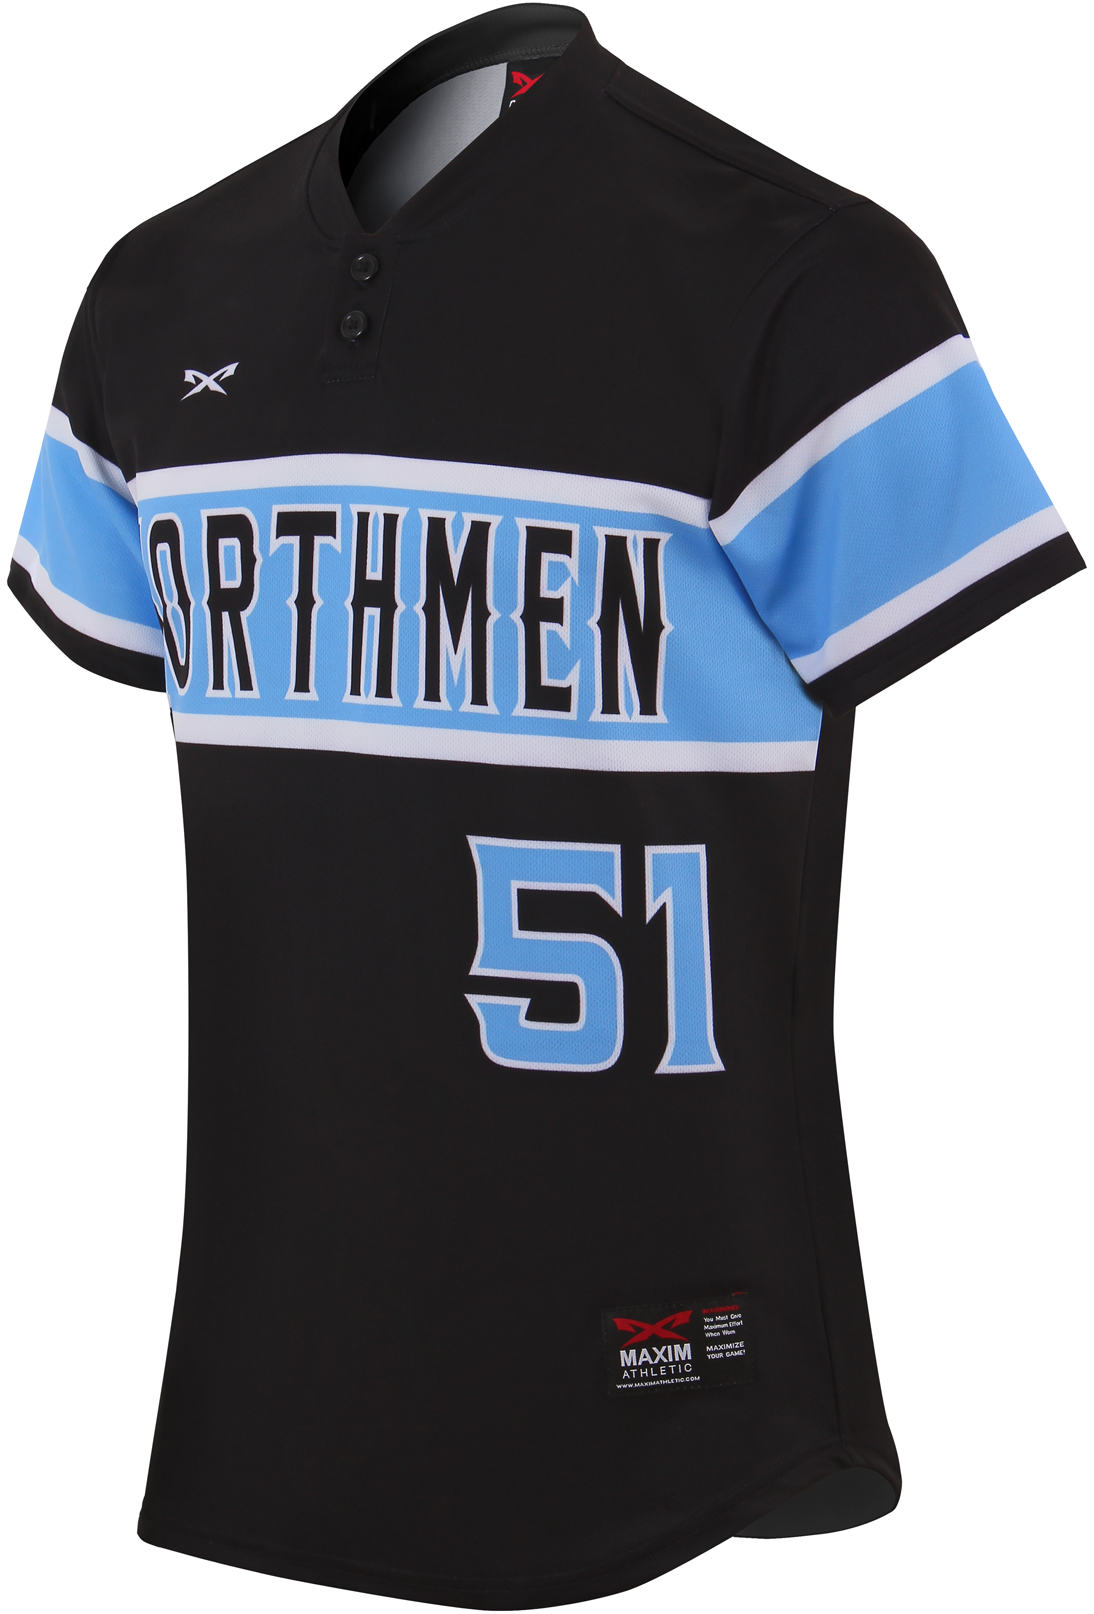 b4779d6ed71 Gamer Sublimated Baseball Jersey. Rollover to Zoom. View Larger